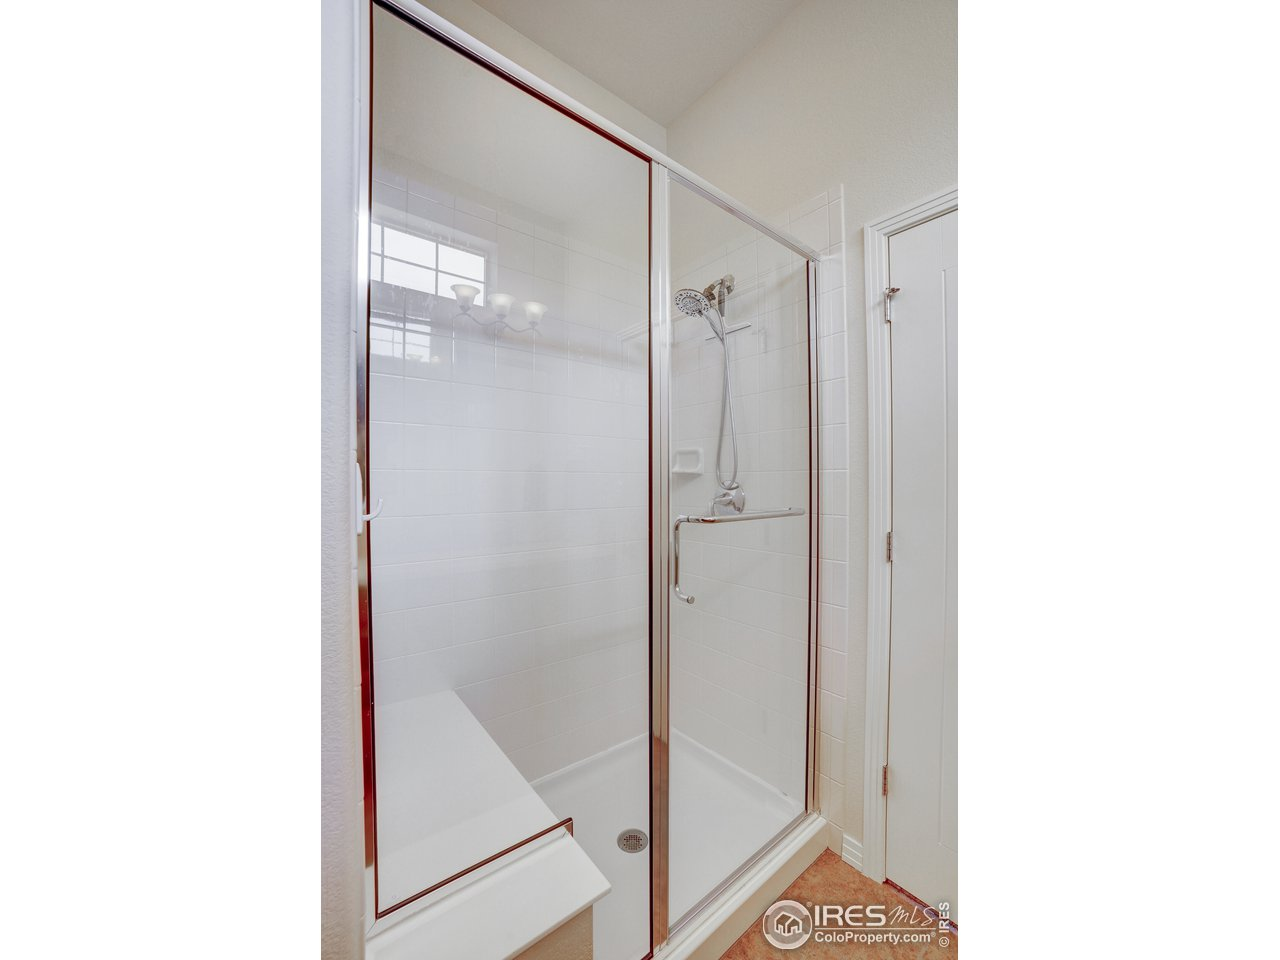 shower has built in seat